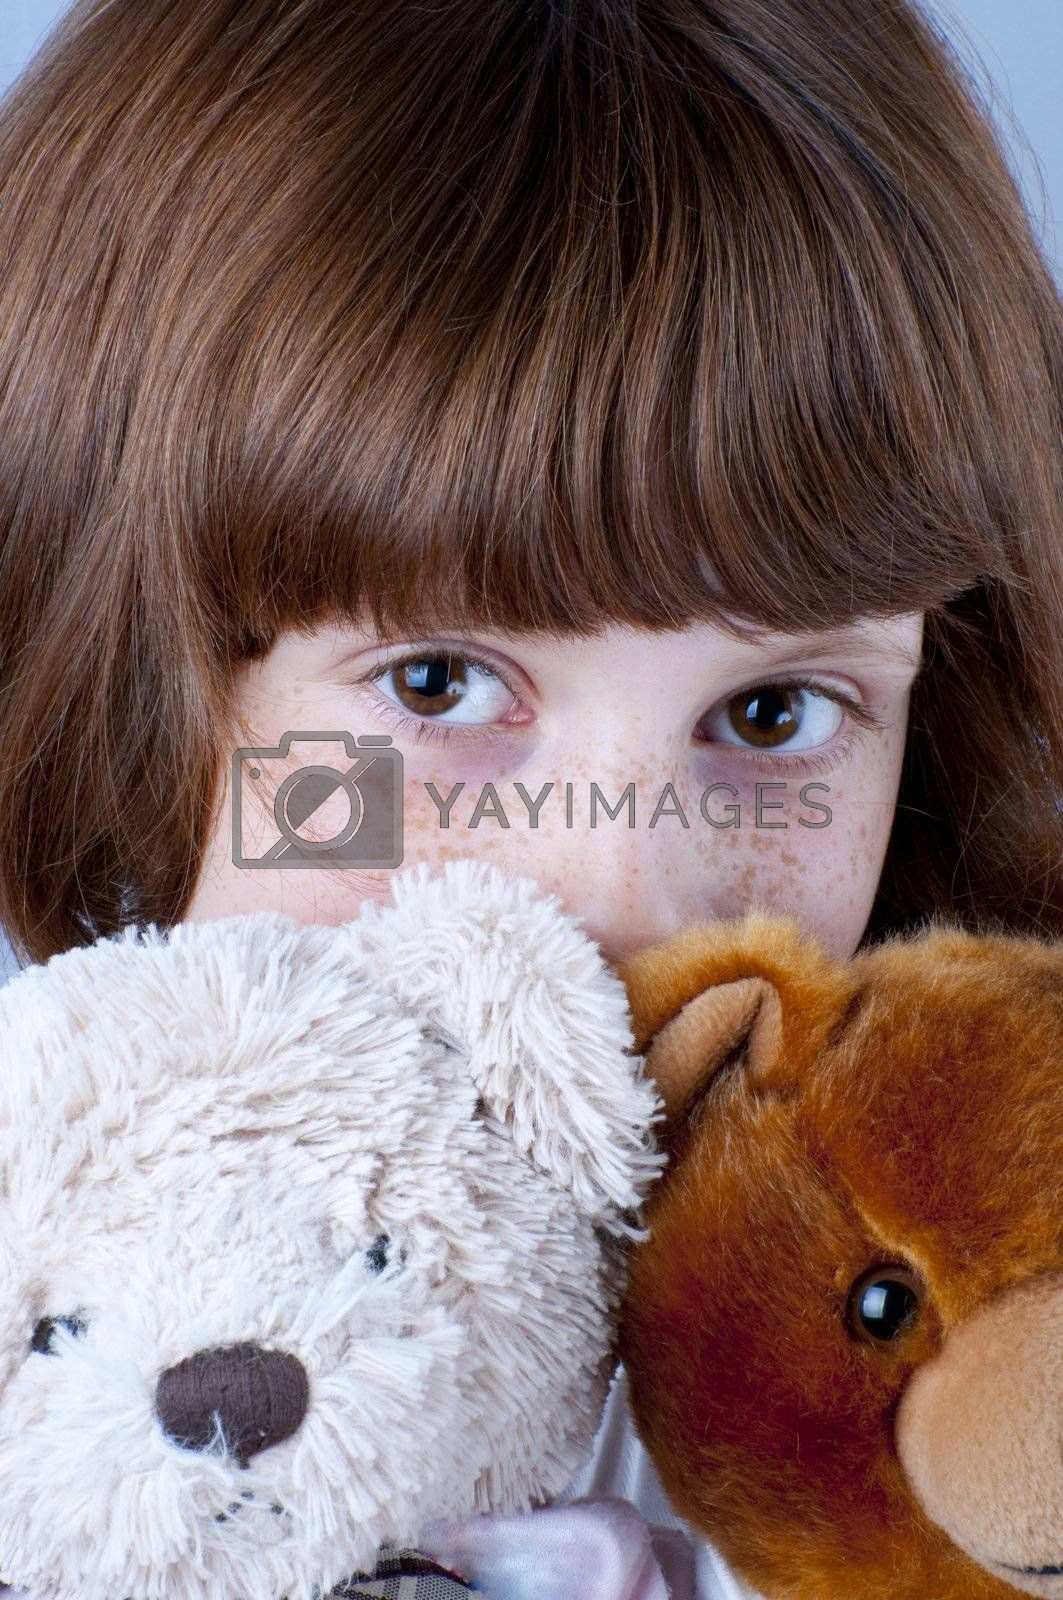 Picture of a young with freckles playing games.